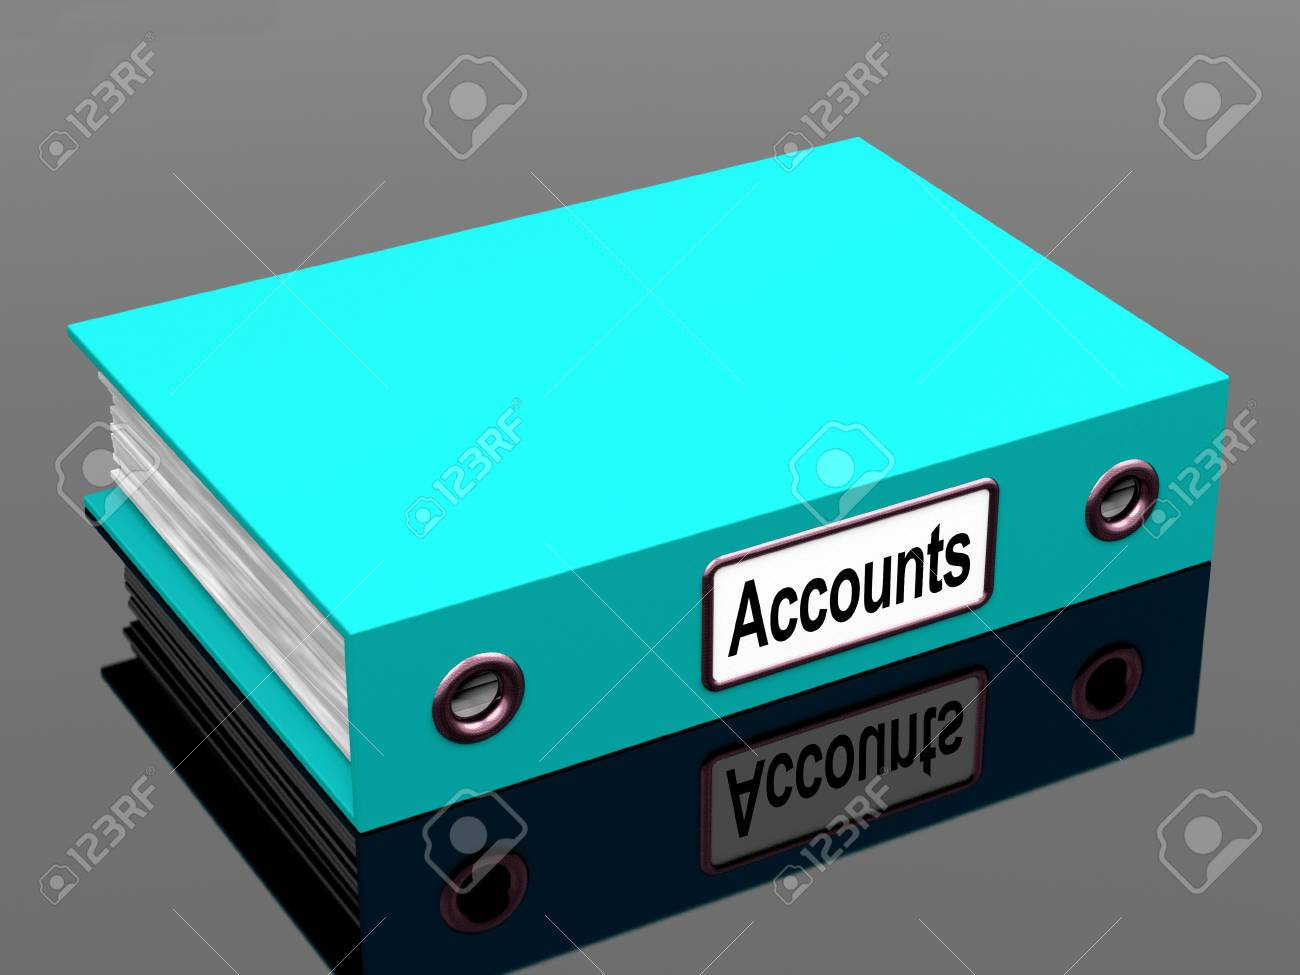 Accounts File Showing Accounting Profit And Expenses Stock Photo - 15083911